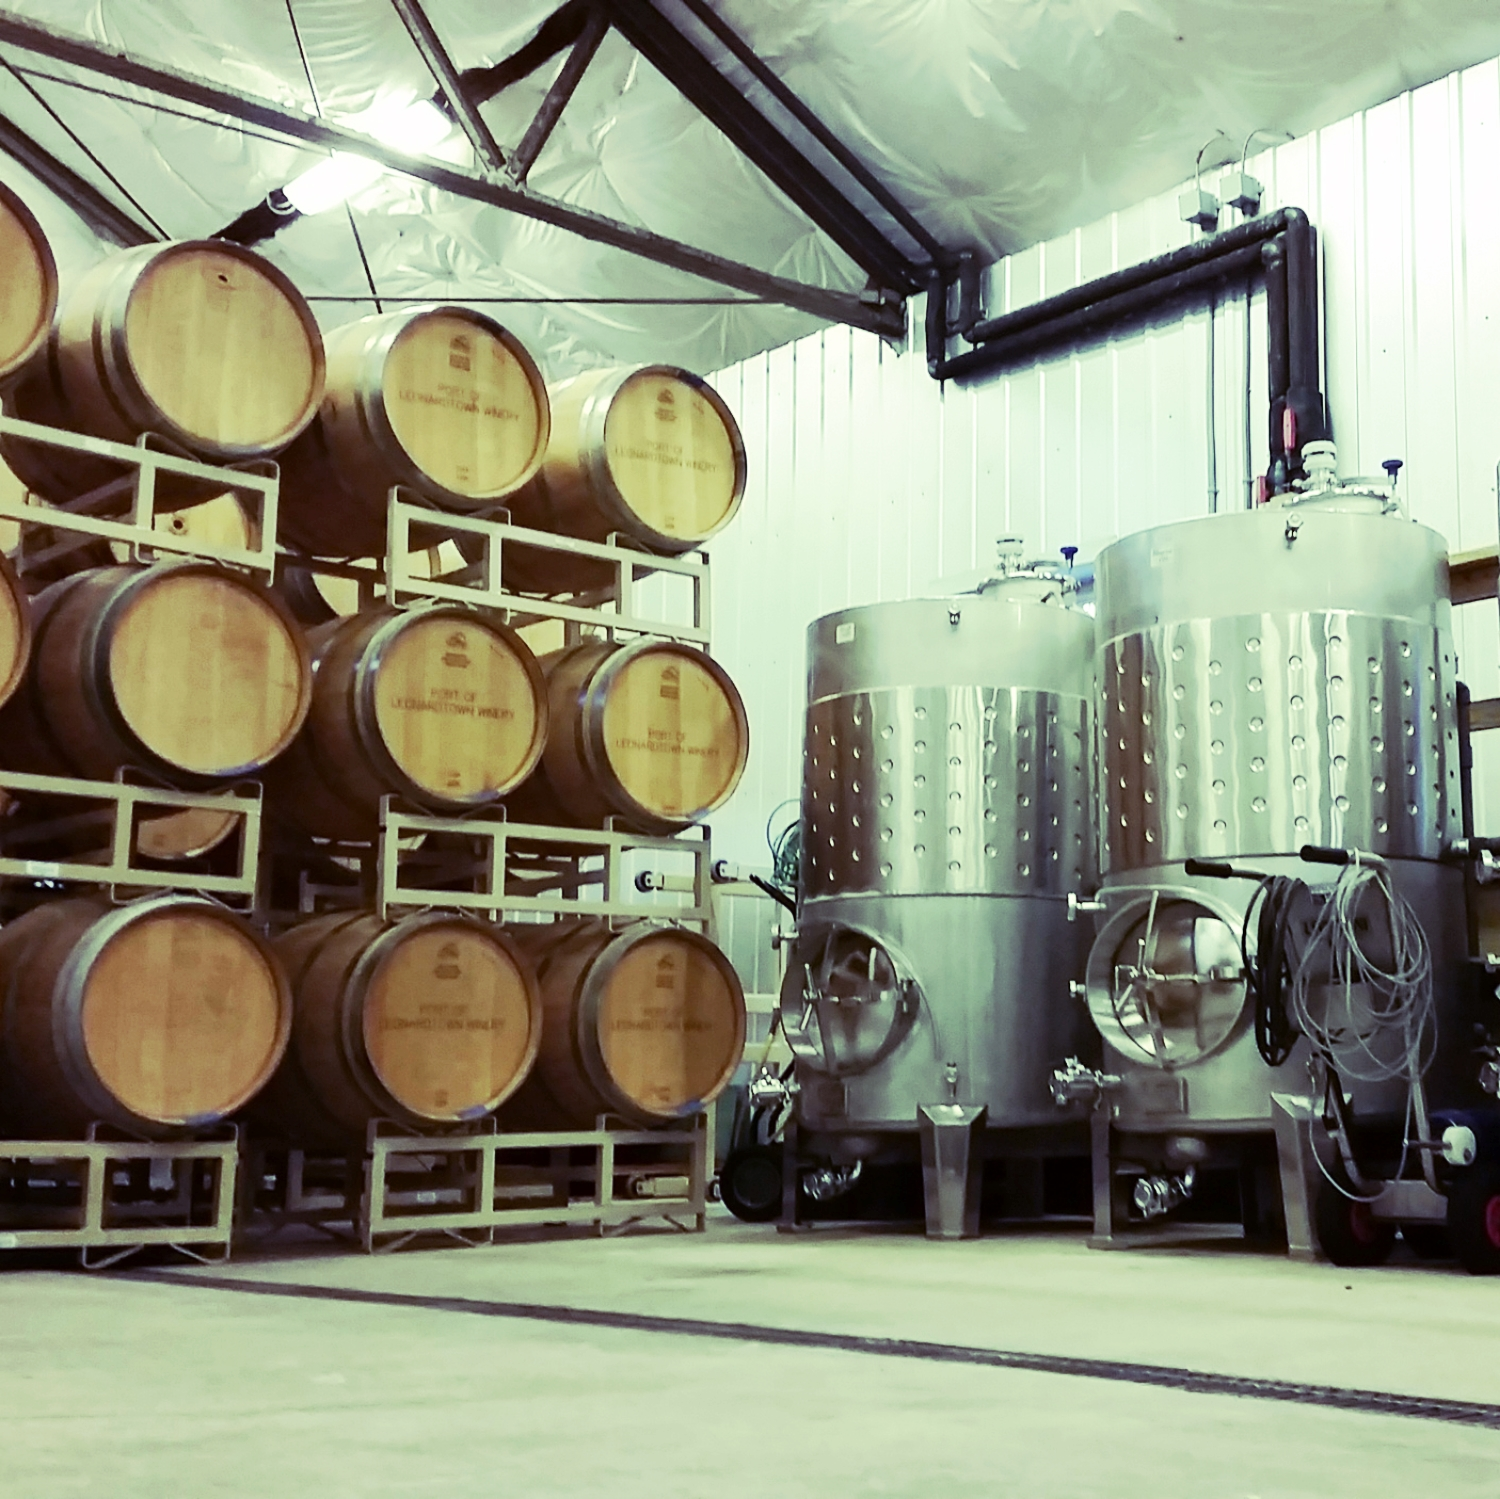 Oak Barrels & Stainless Steel Tanks at Port of Leonardtown Winery.